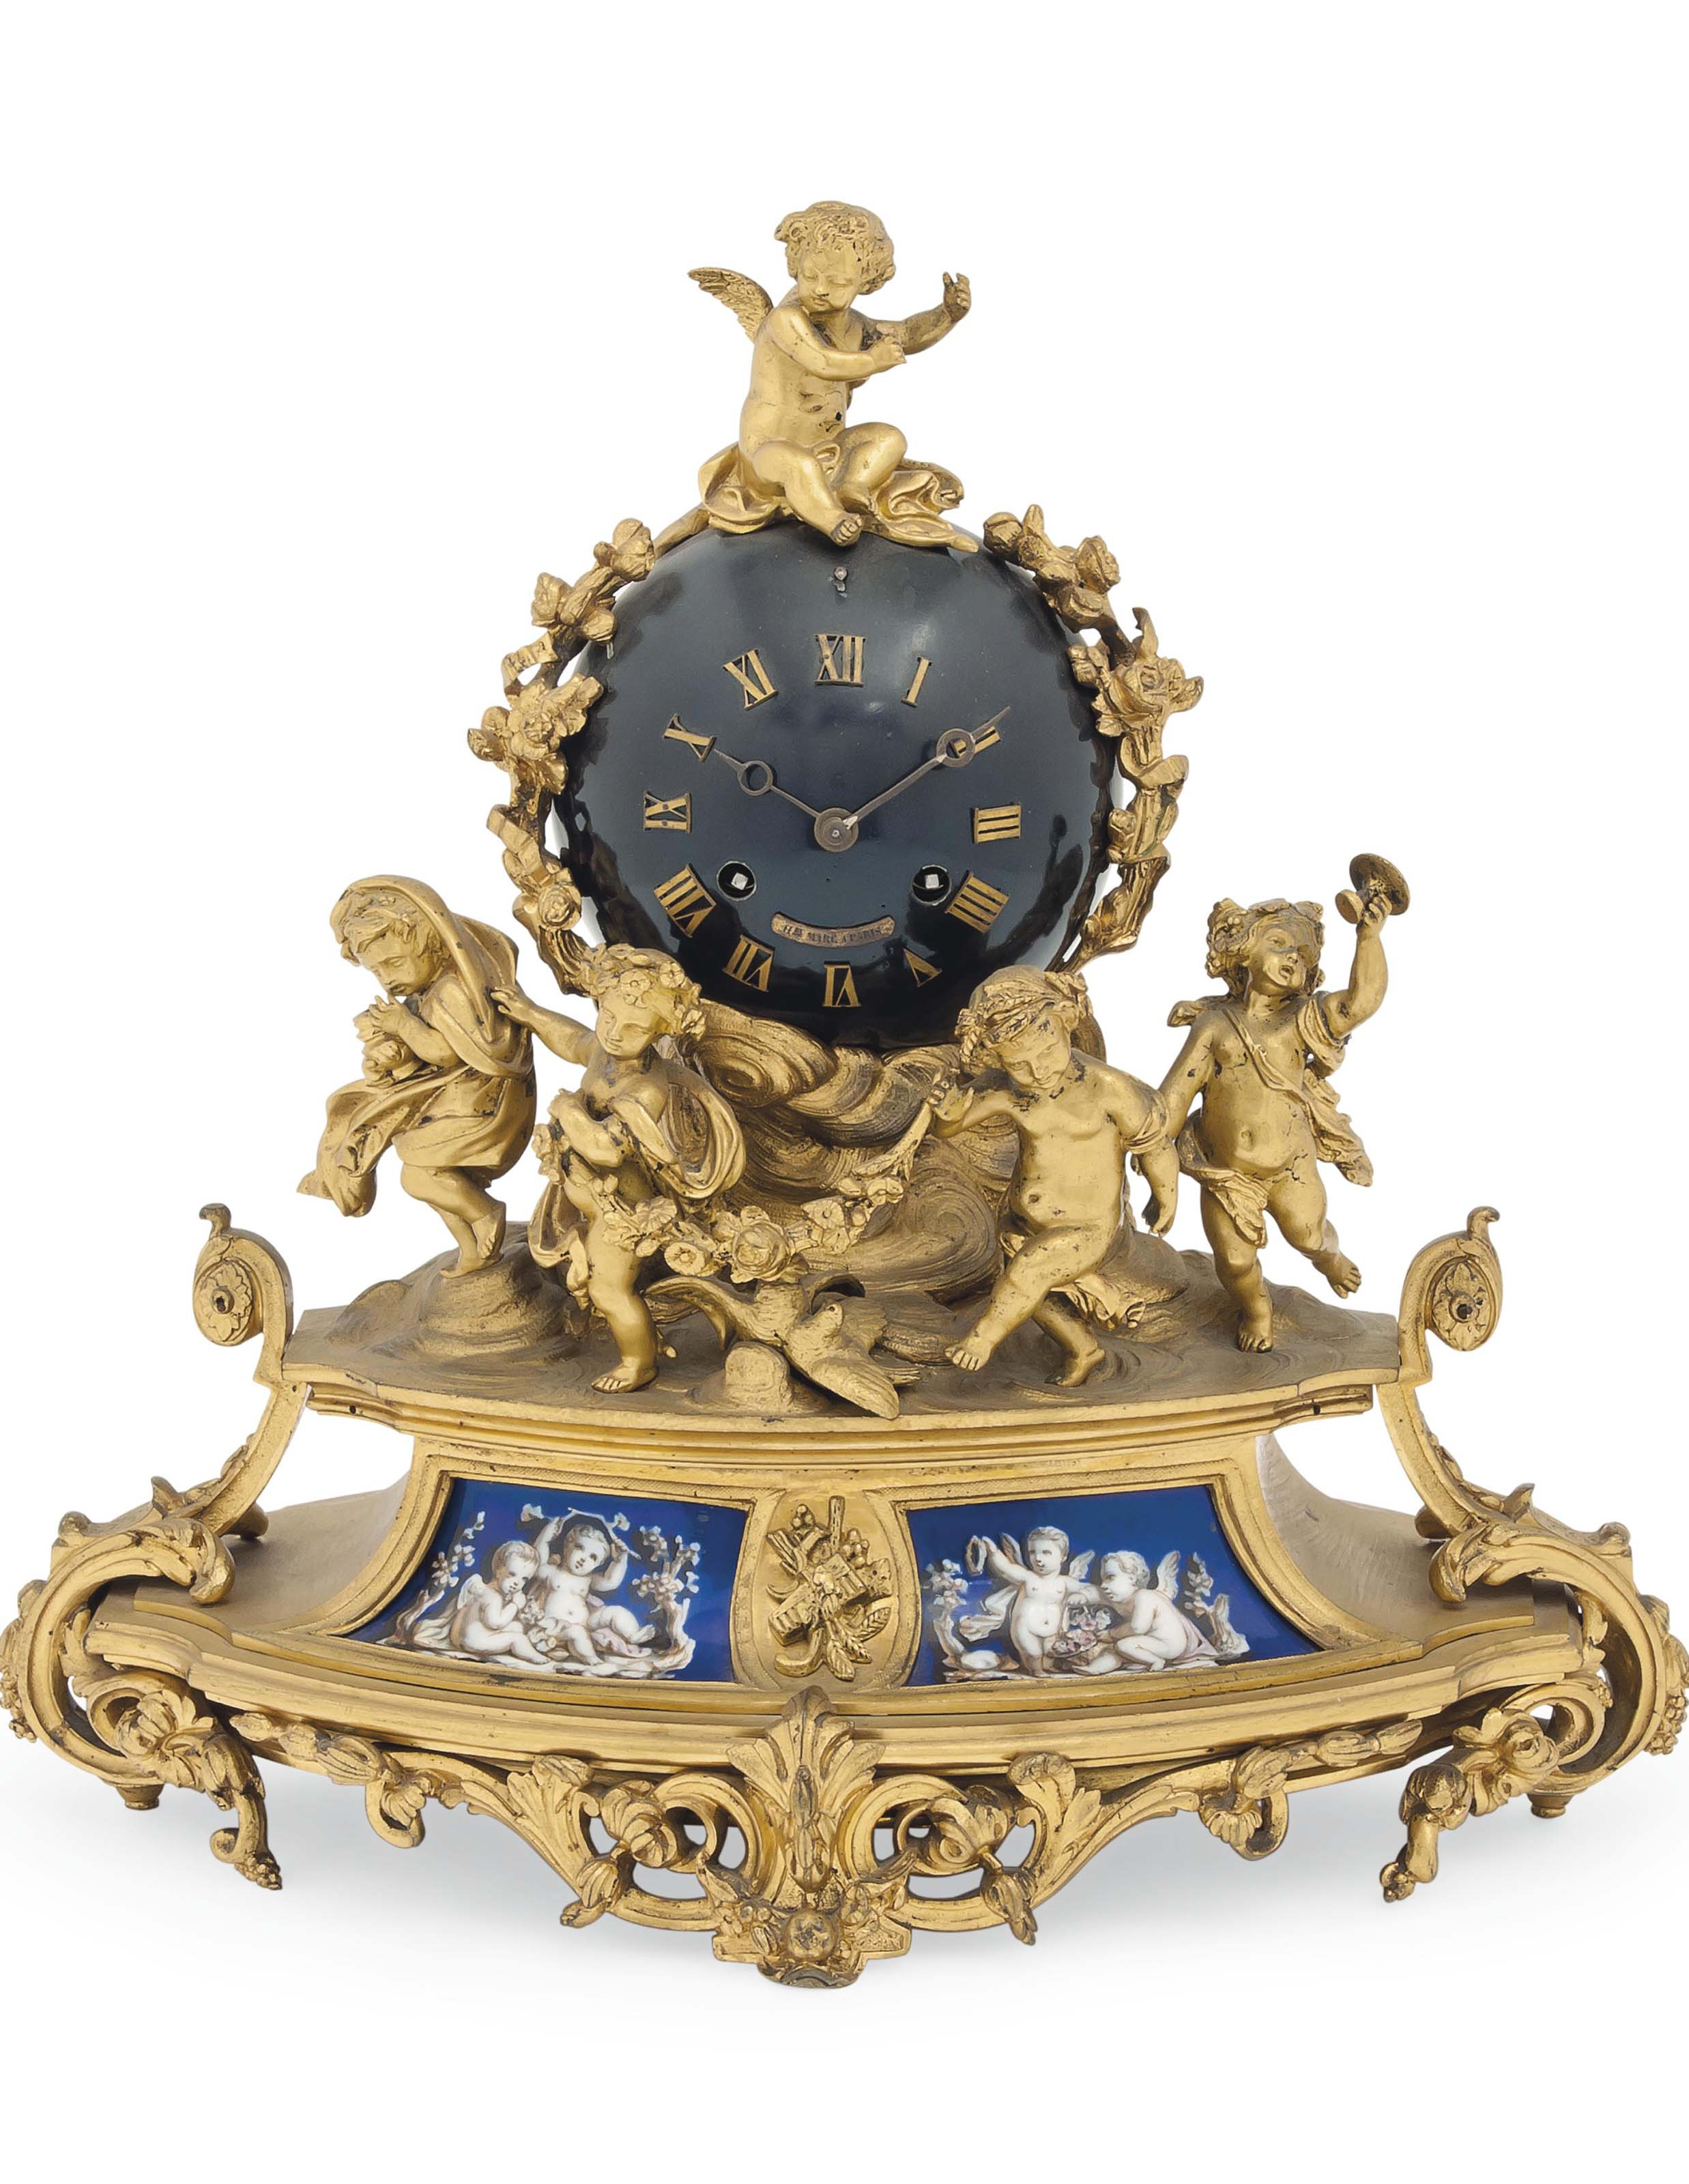 A FRENCH PORCELAIN-MOUNTED GIL